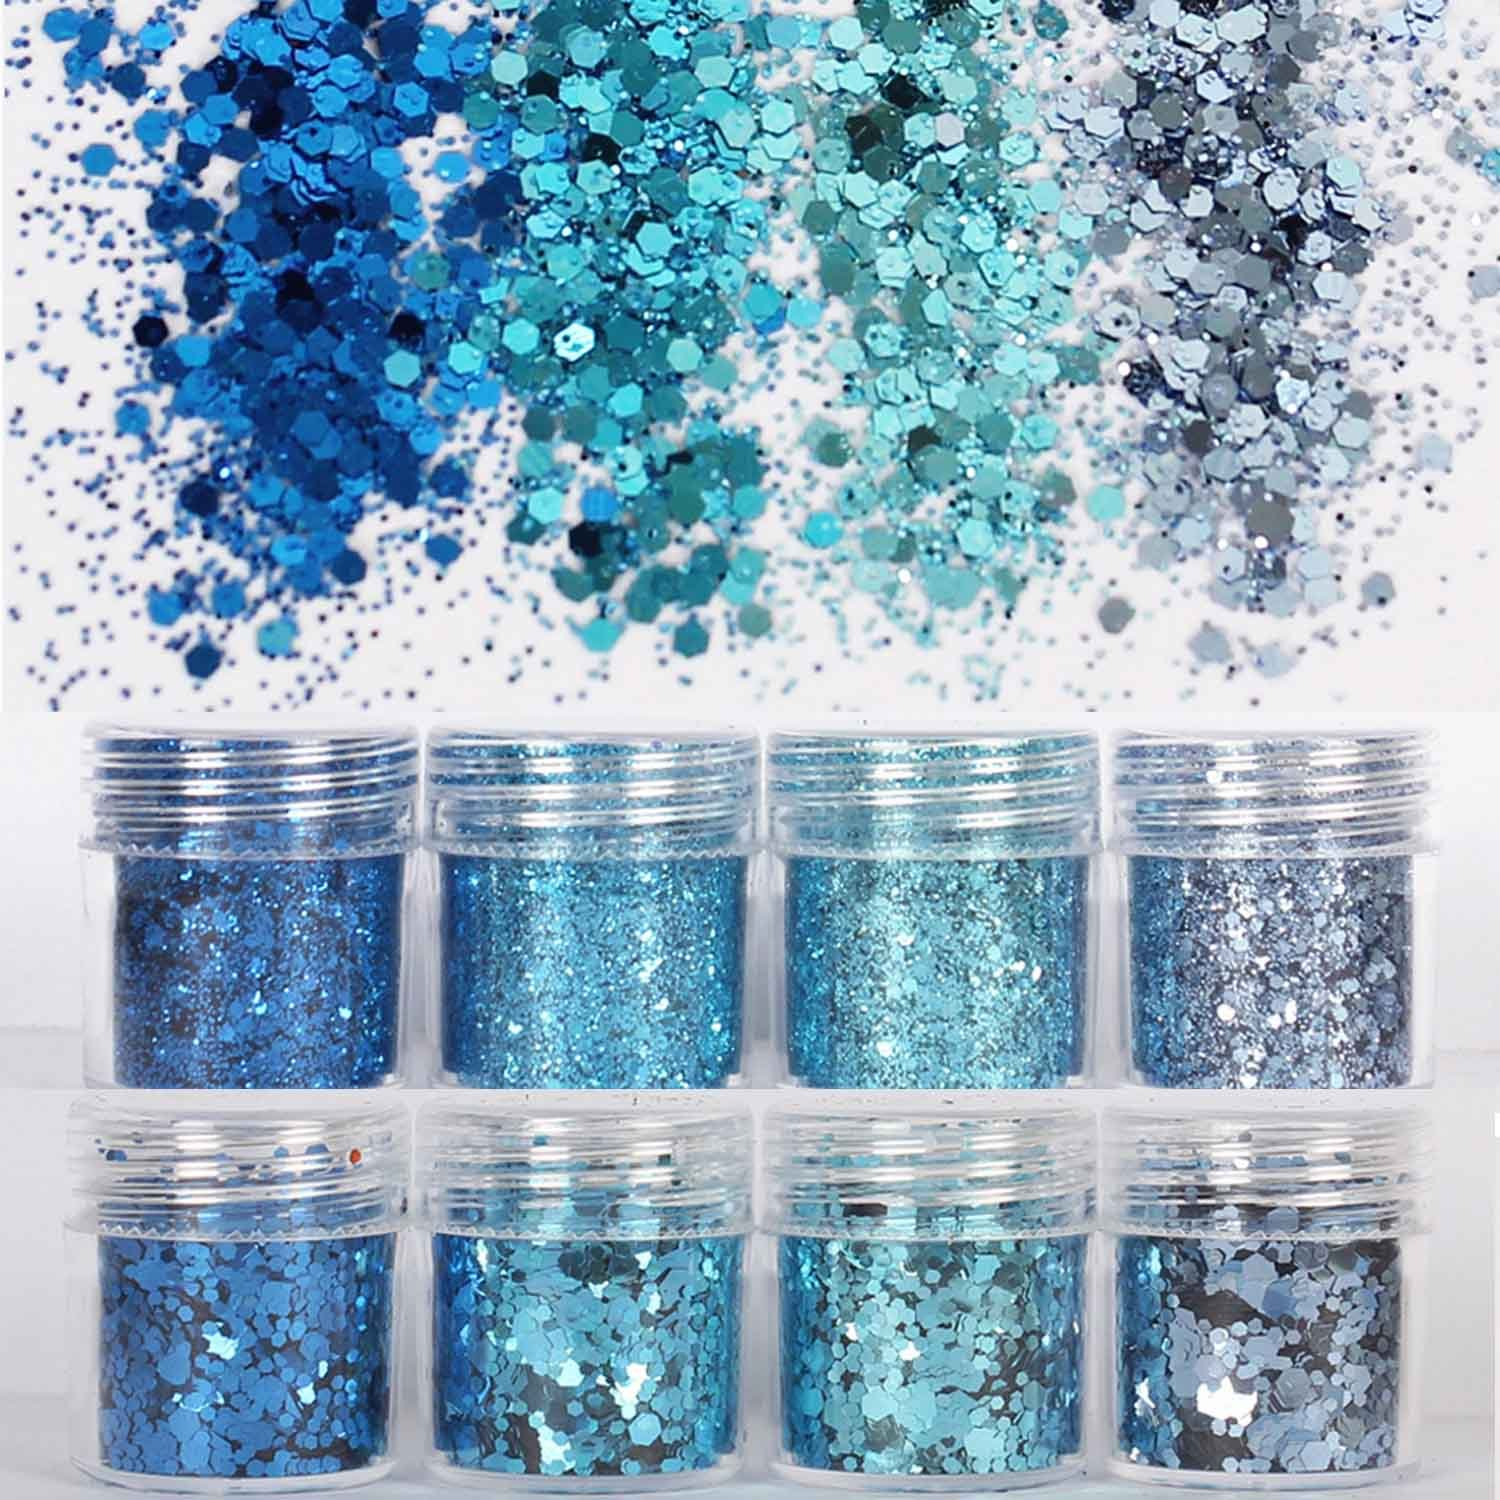 COKOHAPPY 8 Boxes Sky Blue Glitter Mermaid Dreams Ultra-thin Festival Holographic Cosmetic Chunky Sequins Iridescent Flakes Hexagon Tips Mixed Paillette Face Body Hair Nails Cosmetic Glitter by COKOHAPPY (Image #1)